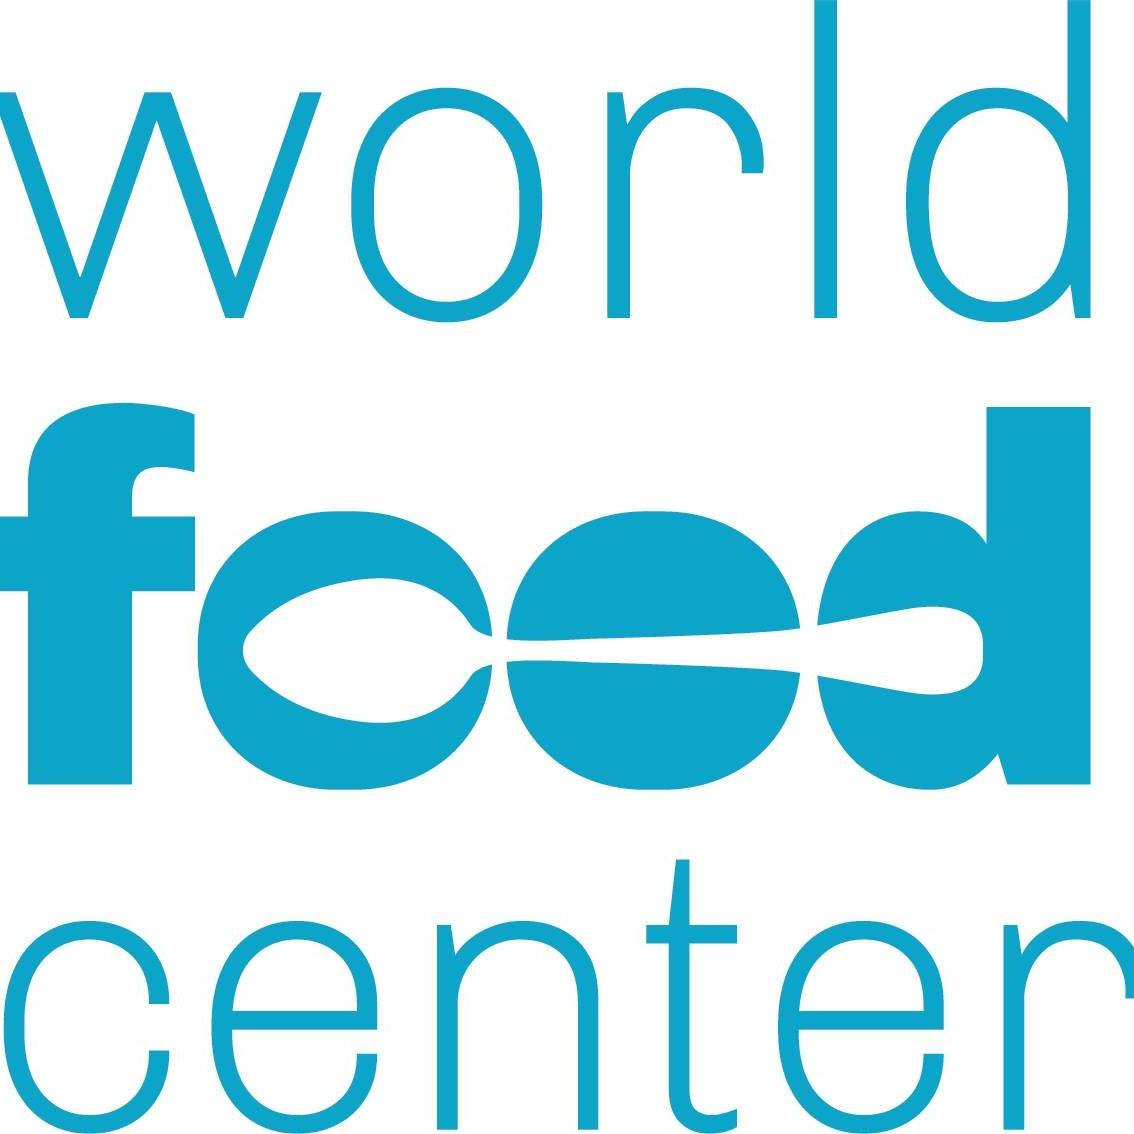 https://gezondeinnovatie.nl/files/logos/World-food-center.png